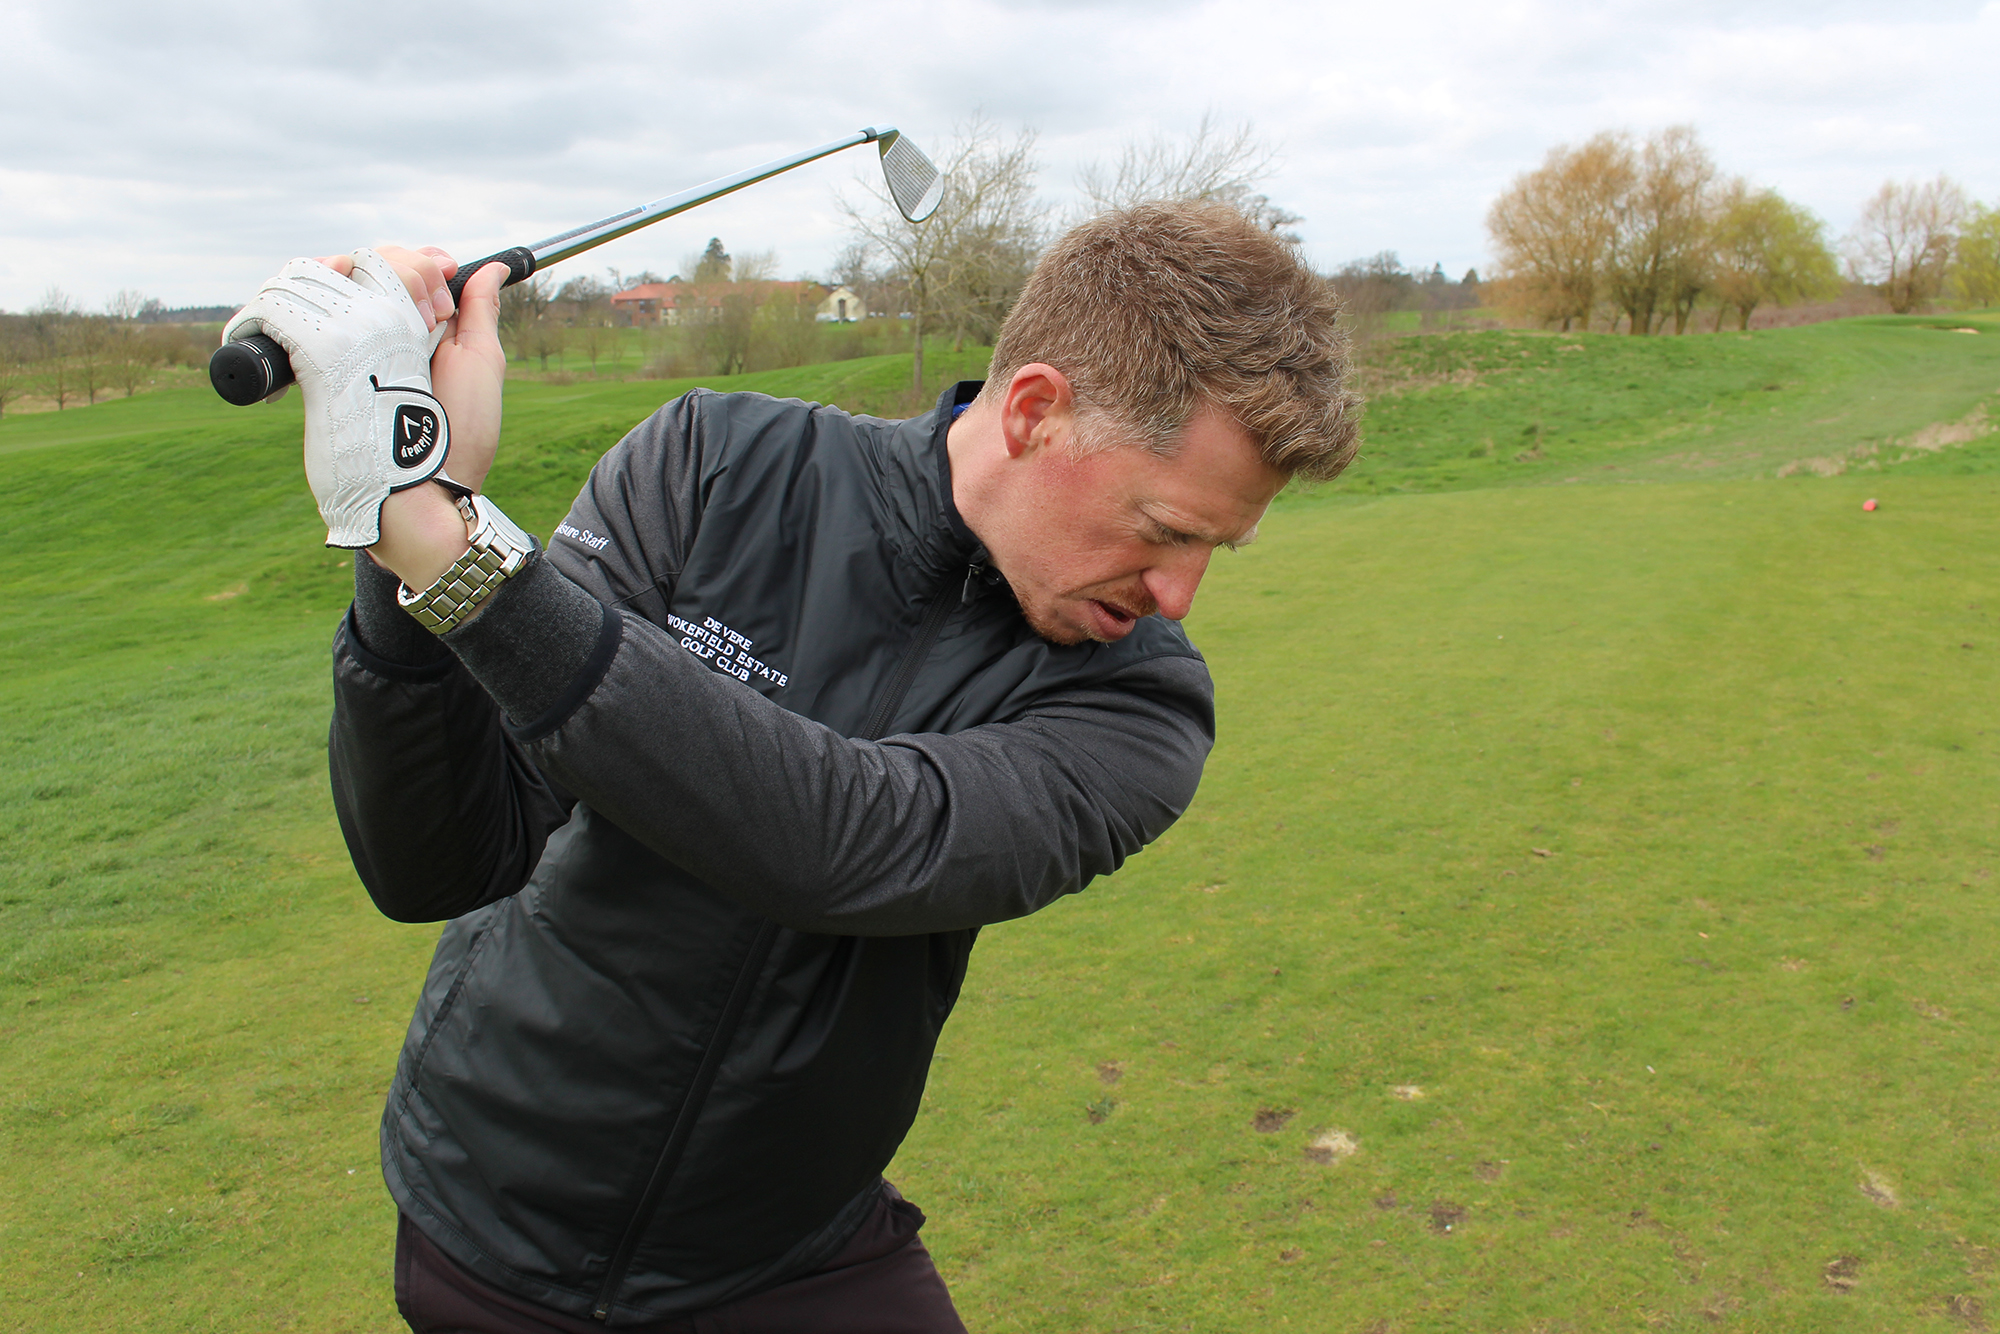 How to grip the golf club: Step by step guide | GolfMagic